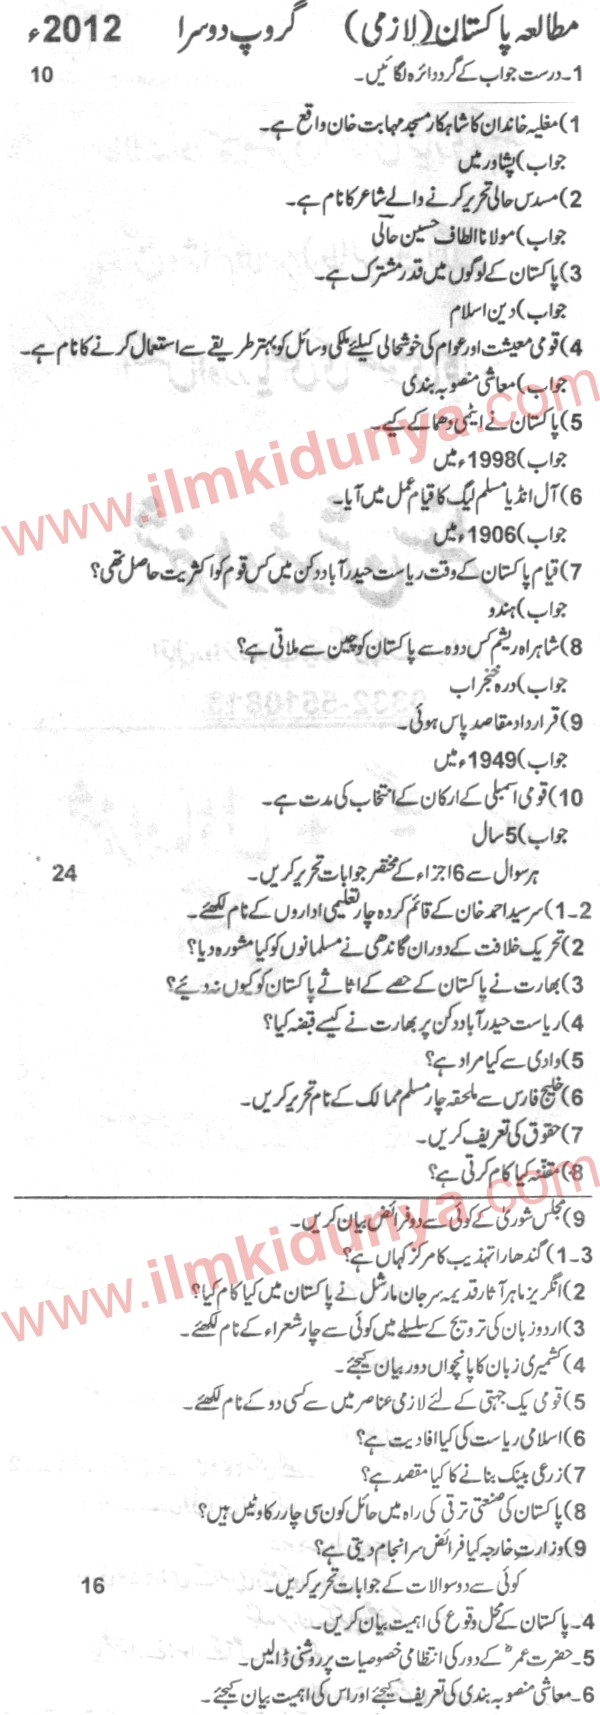 past papers intermediate part 2 rawalpindi board 12th class past papers of fsc lahore board hssc part 2 on beeducated students will find 5 years up to date past papers of 12th class fsc bise lahore boards of pakistan lahore board fsc past papers of intermediate part 2, sample question papers & past papers of 12th class.